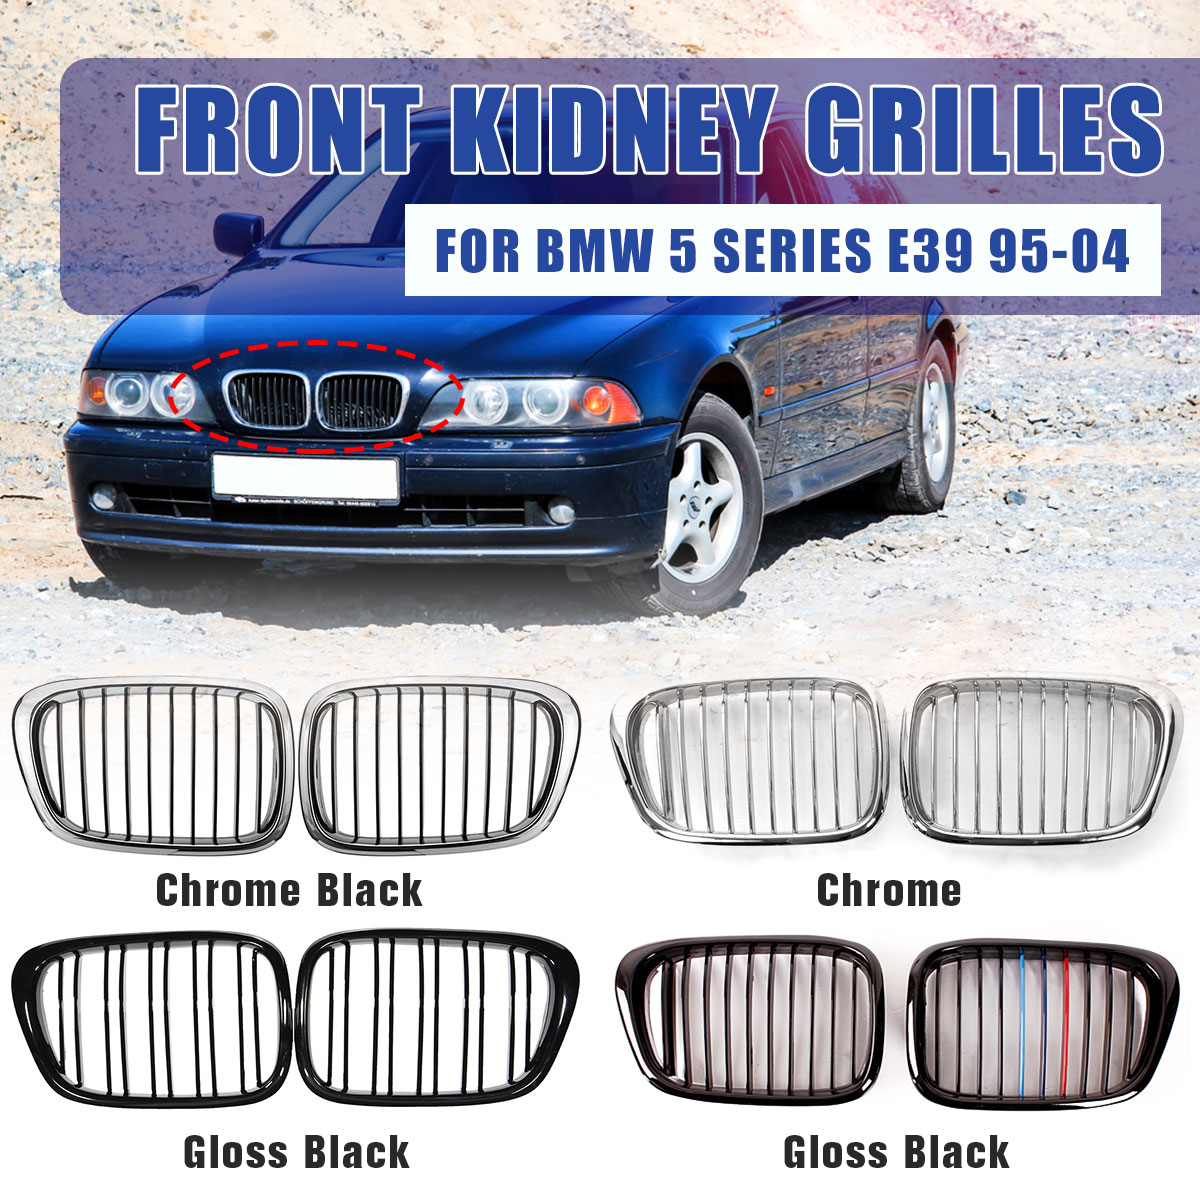 2Pcs Car Front Gloss M-color Kidney Grille Grilles For BMW E39 5 Series 525 528 530 540 M5 1997 1998 1999 2000 2001 2002 2003